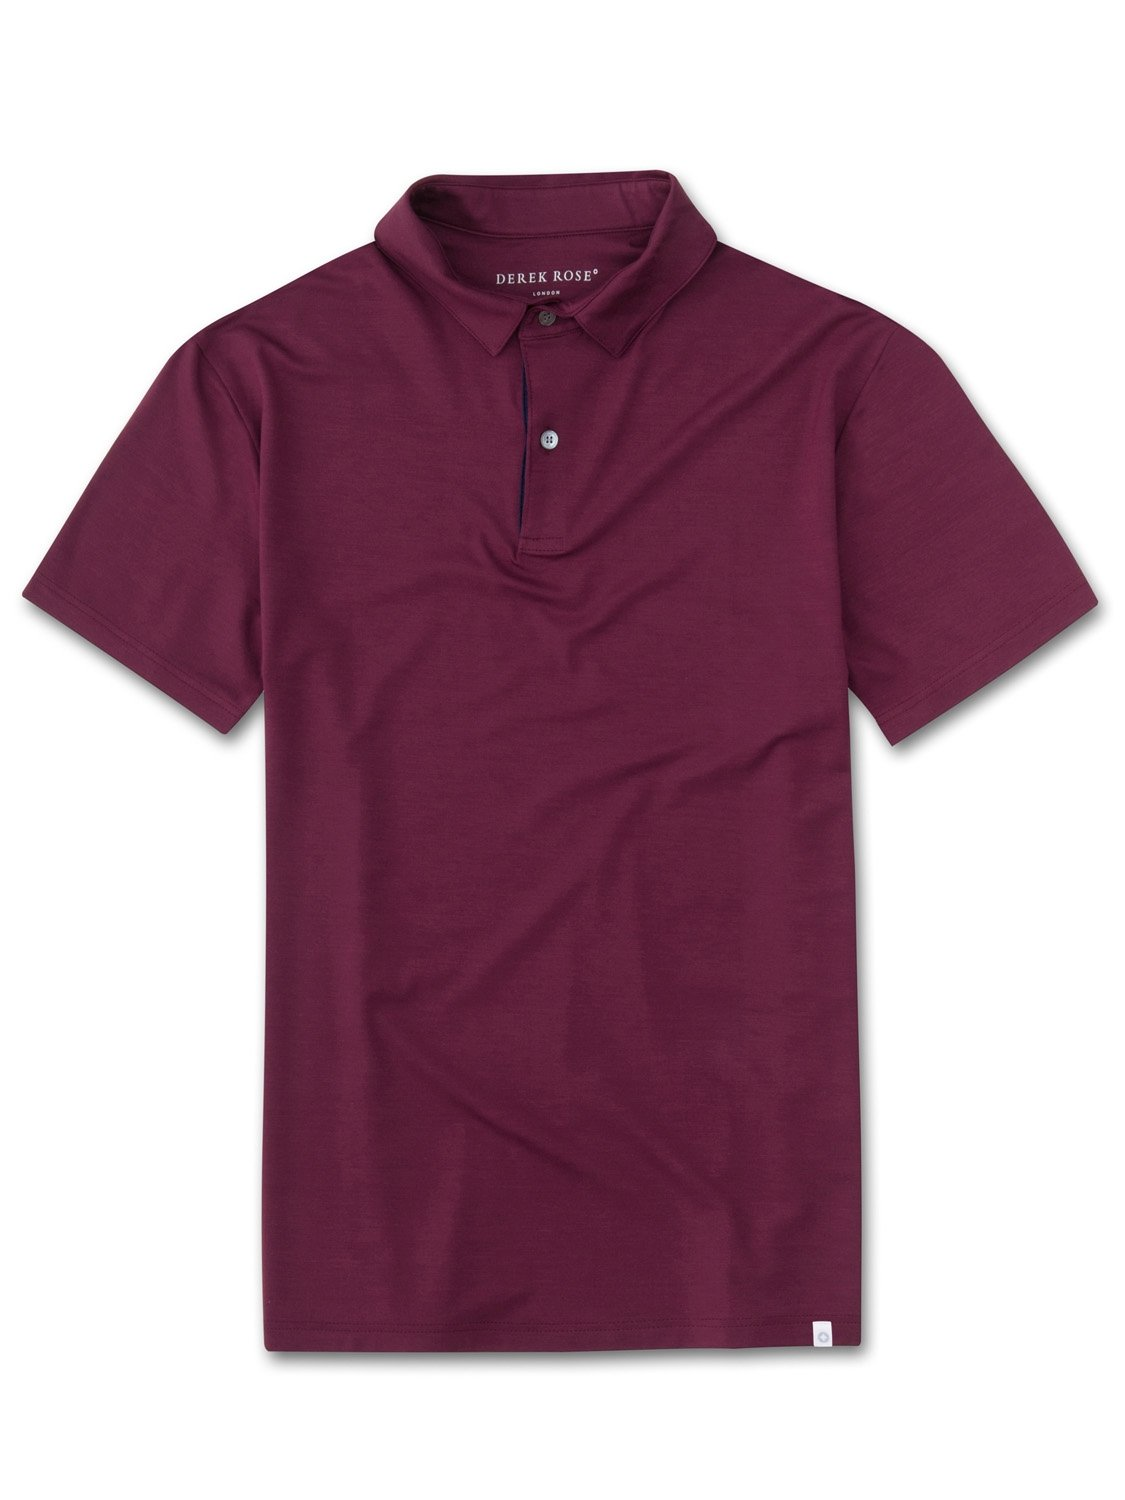 Men's Short Sleeve Polo Shirt Basel 5 Micro Modal Stretch Burgundy